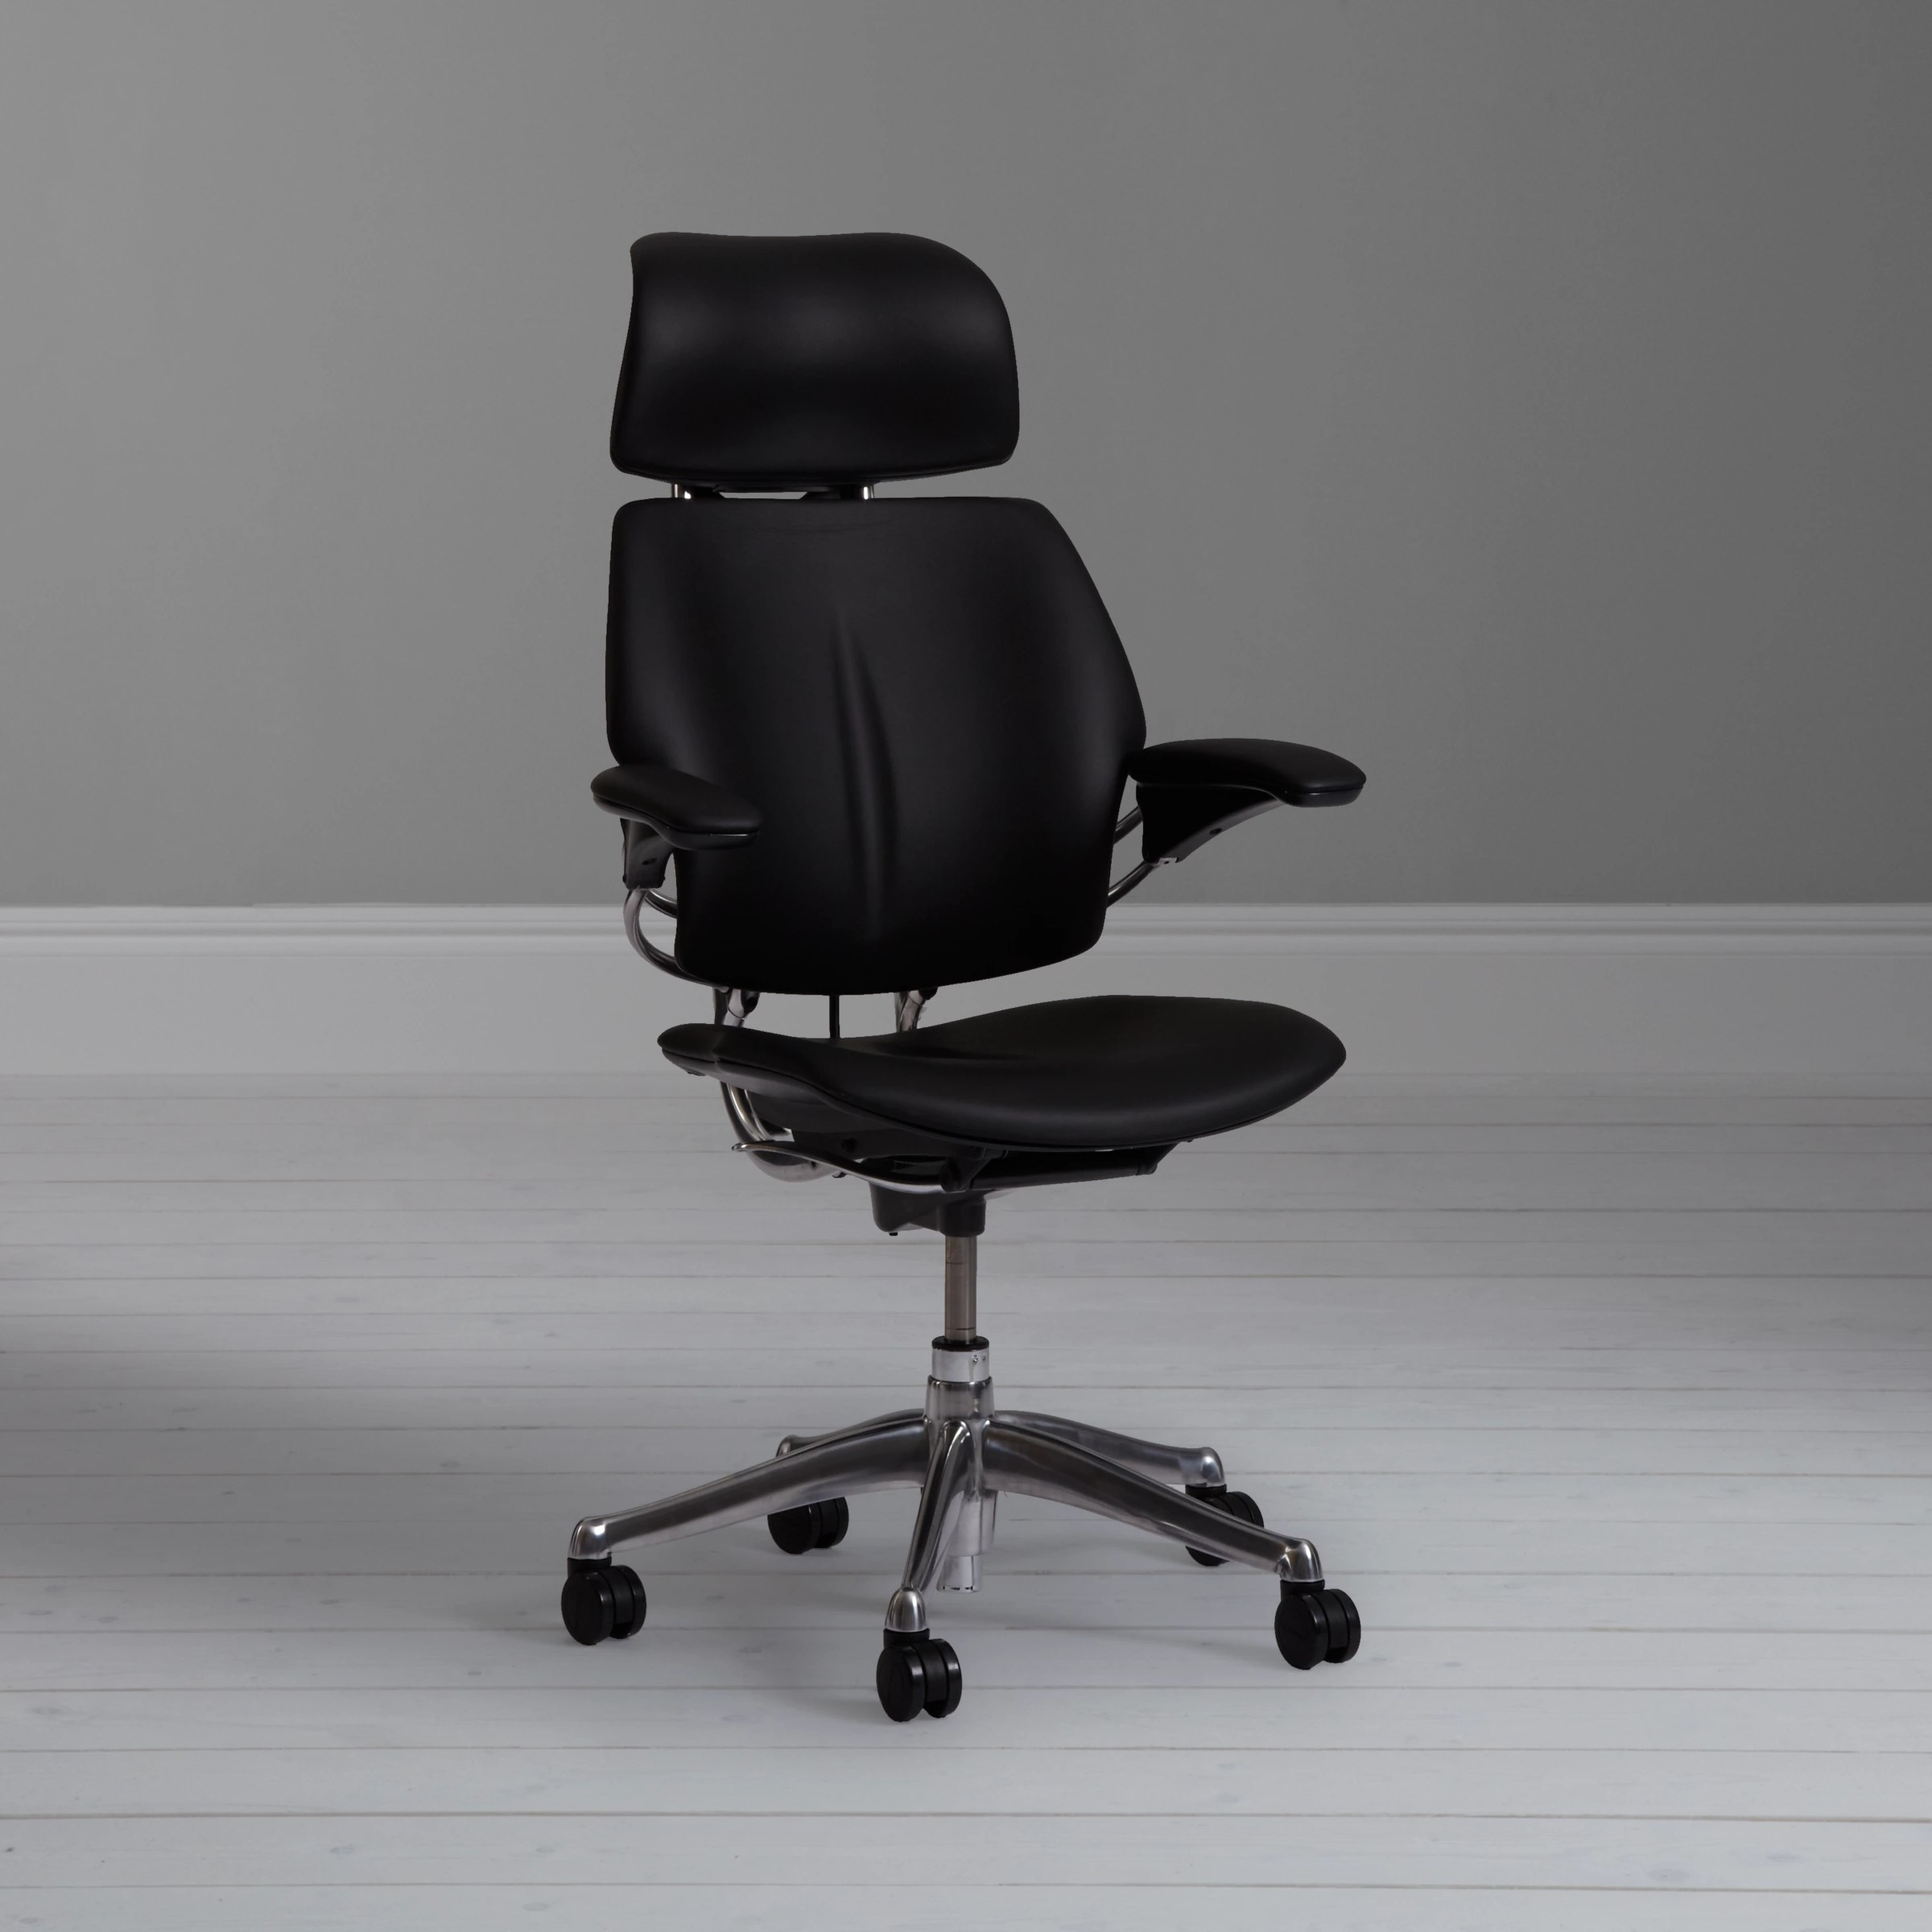 Humanscale Liberty Chair Humanscale Freedom Office Chair With Headrest At John